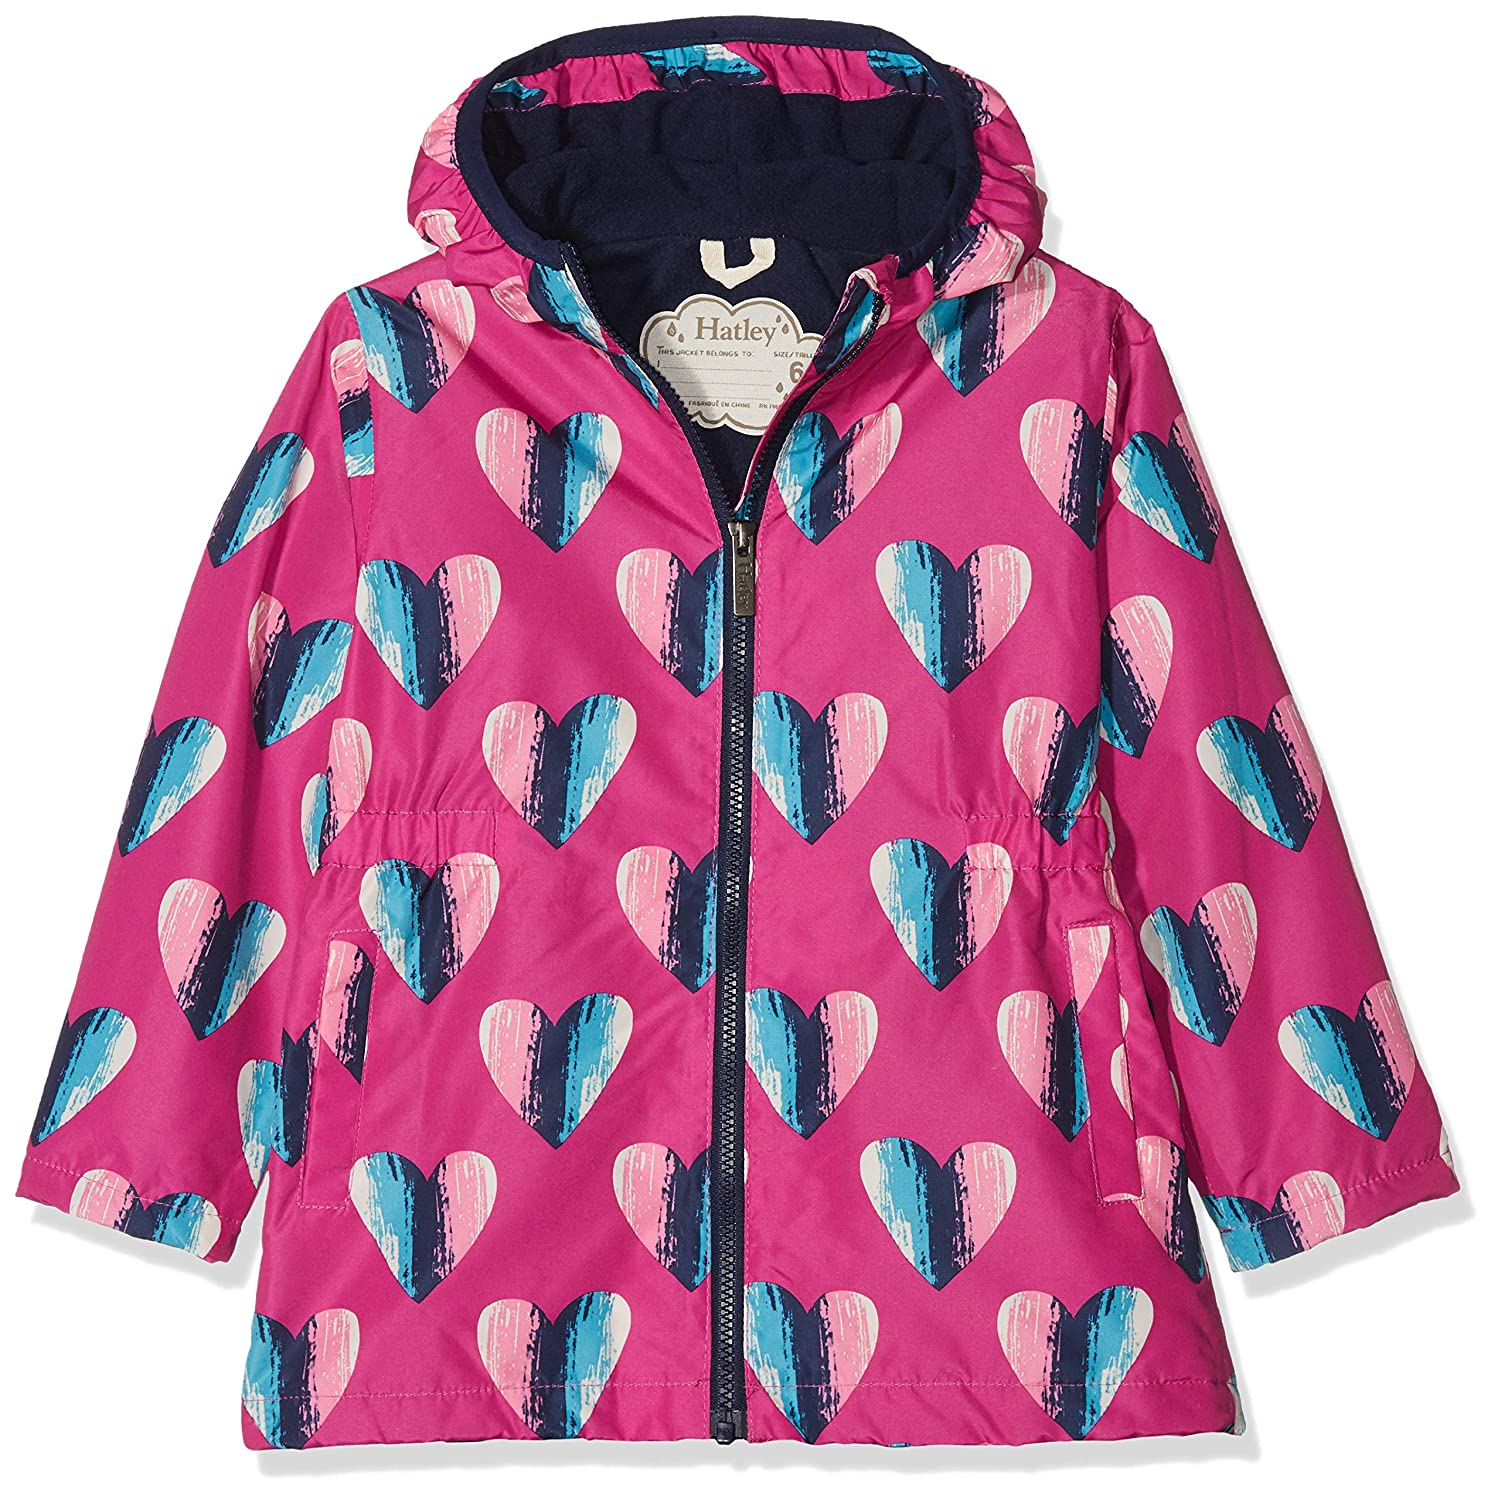 Hatley Girl's Microfiber Rain Jackets Raincoat